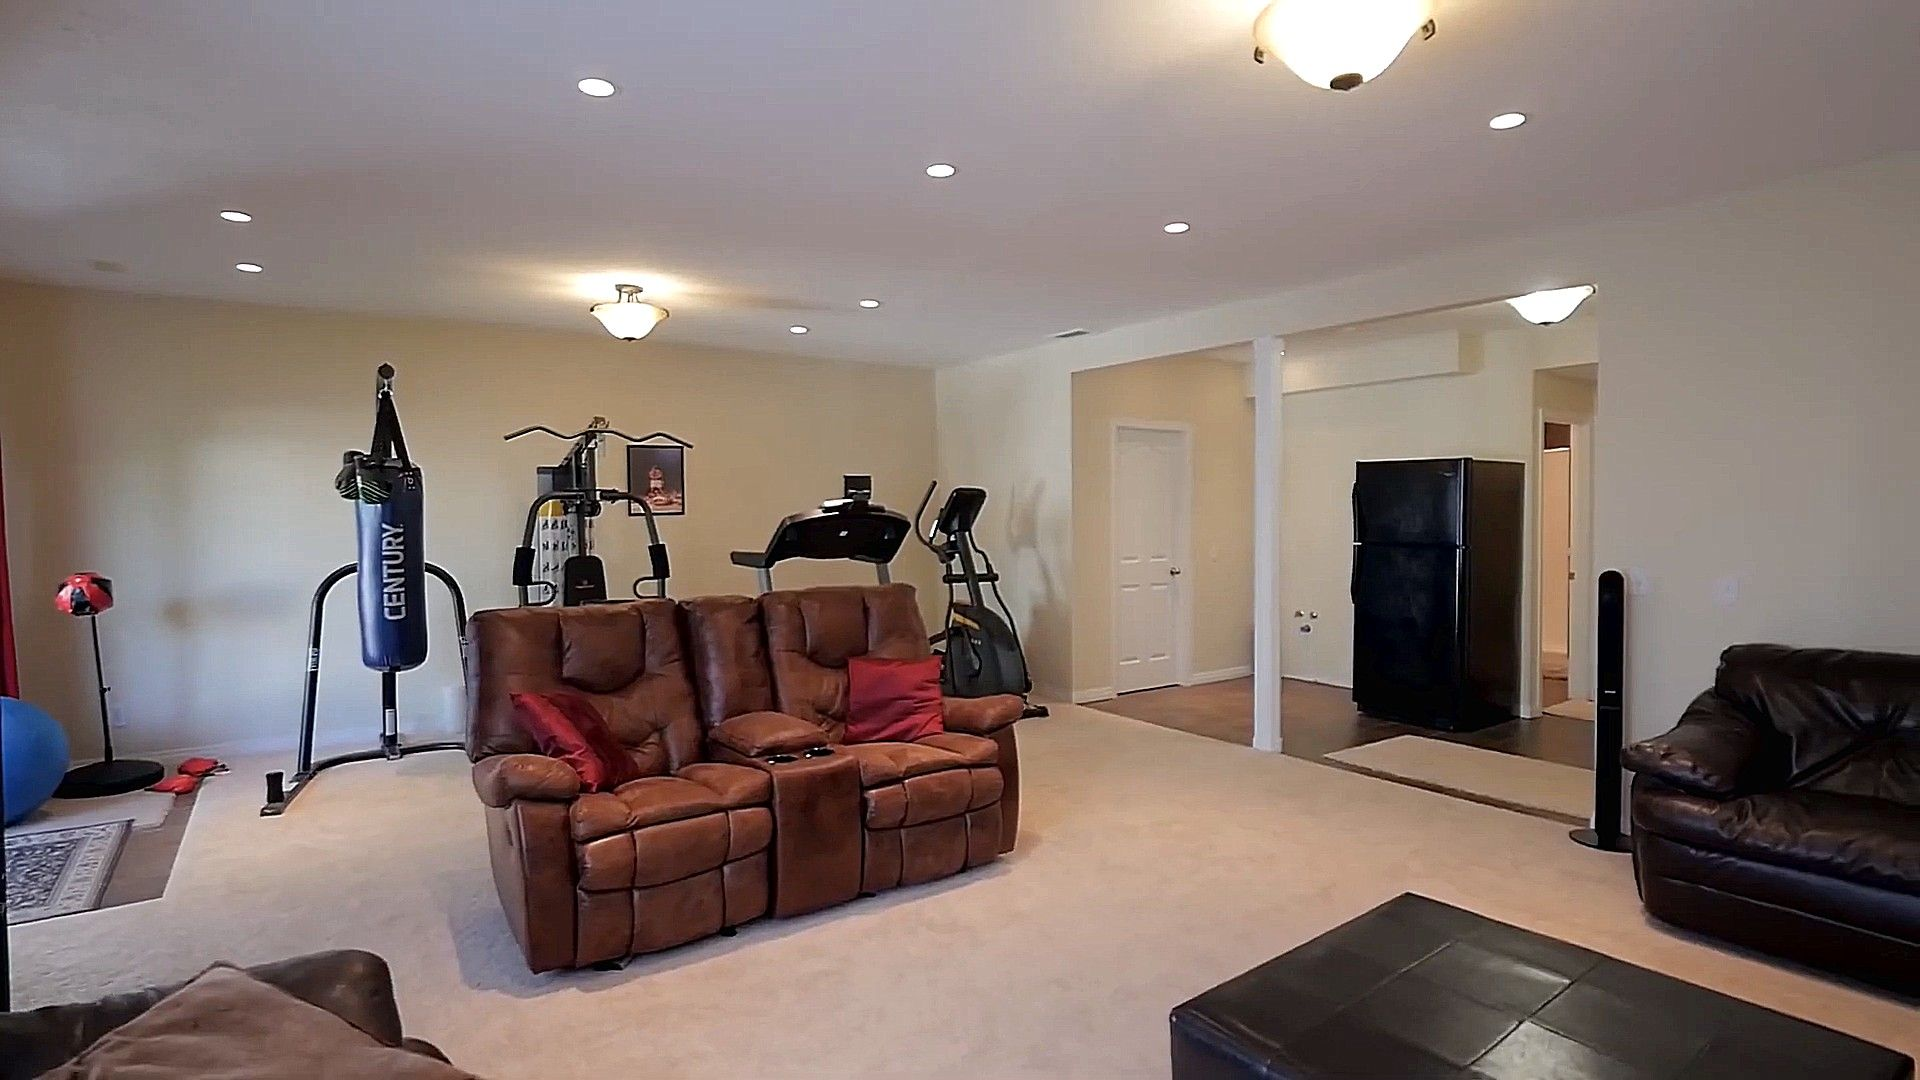 Fitness Tools In Living Room